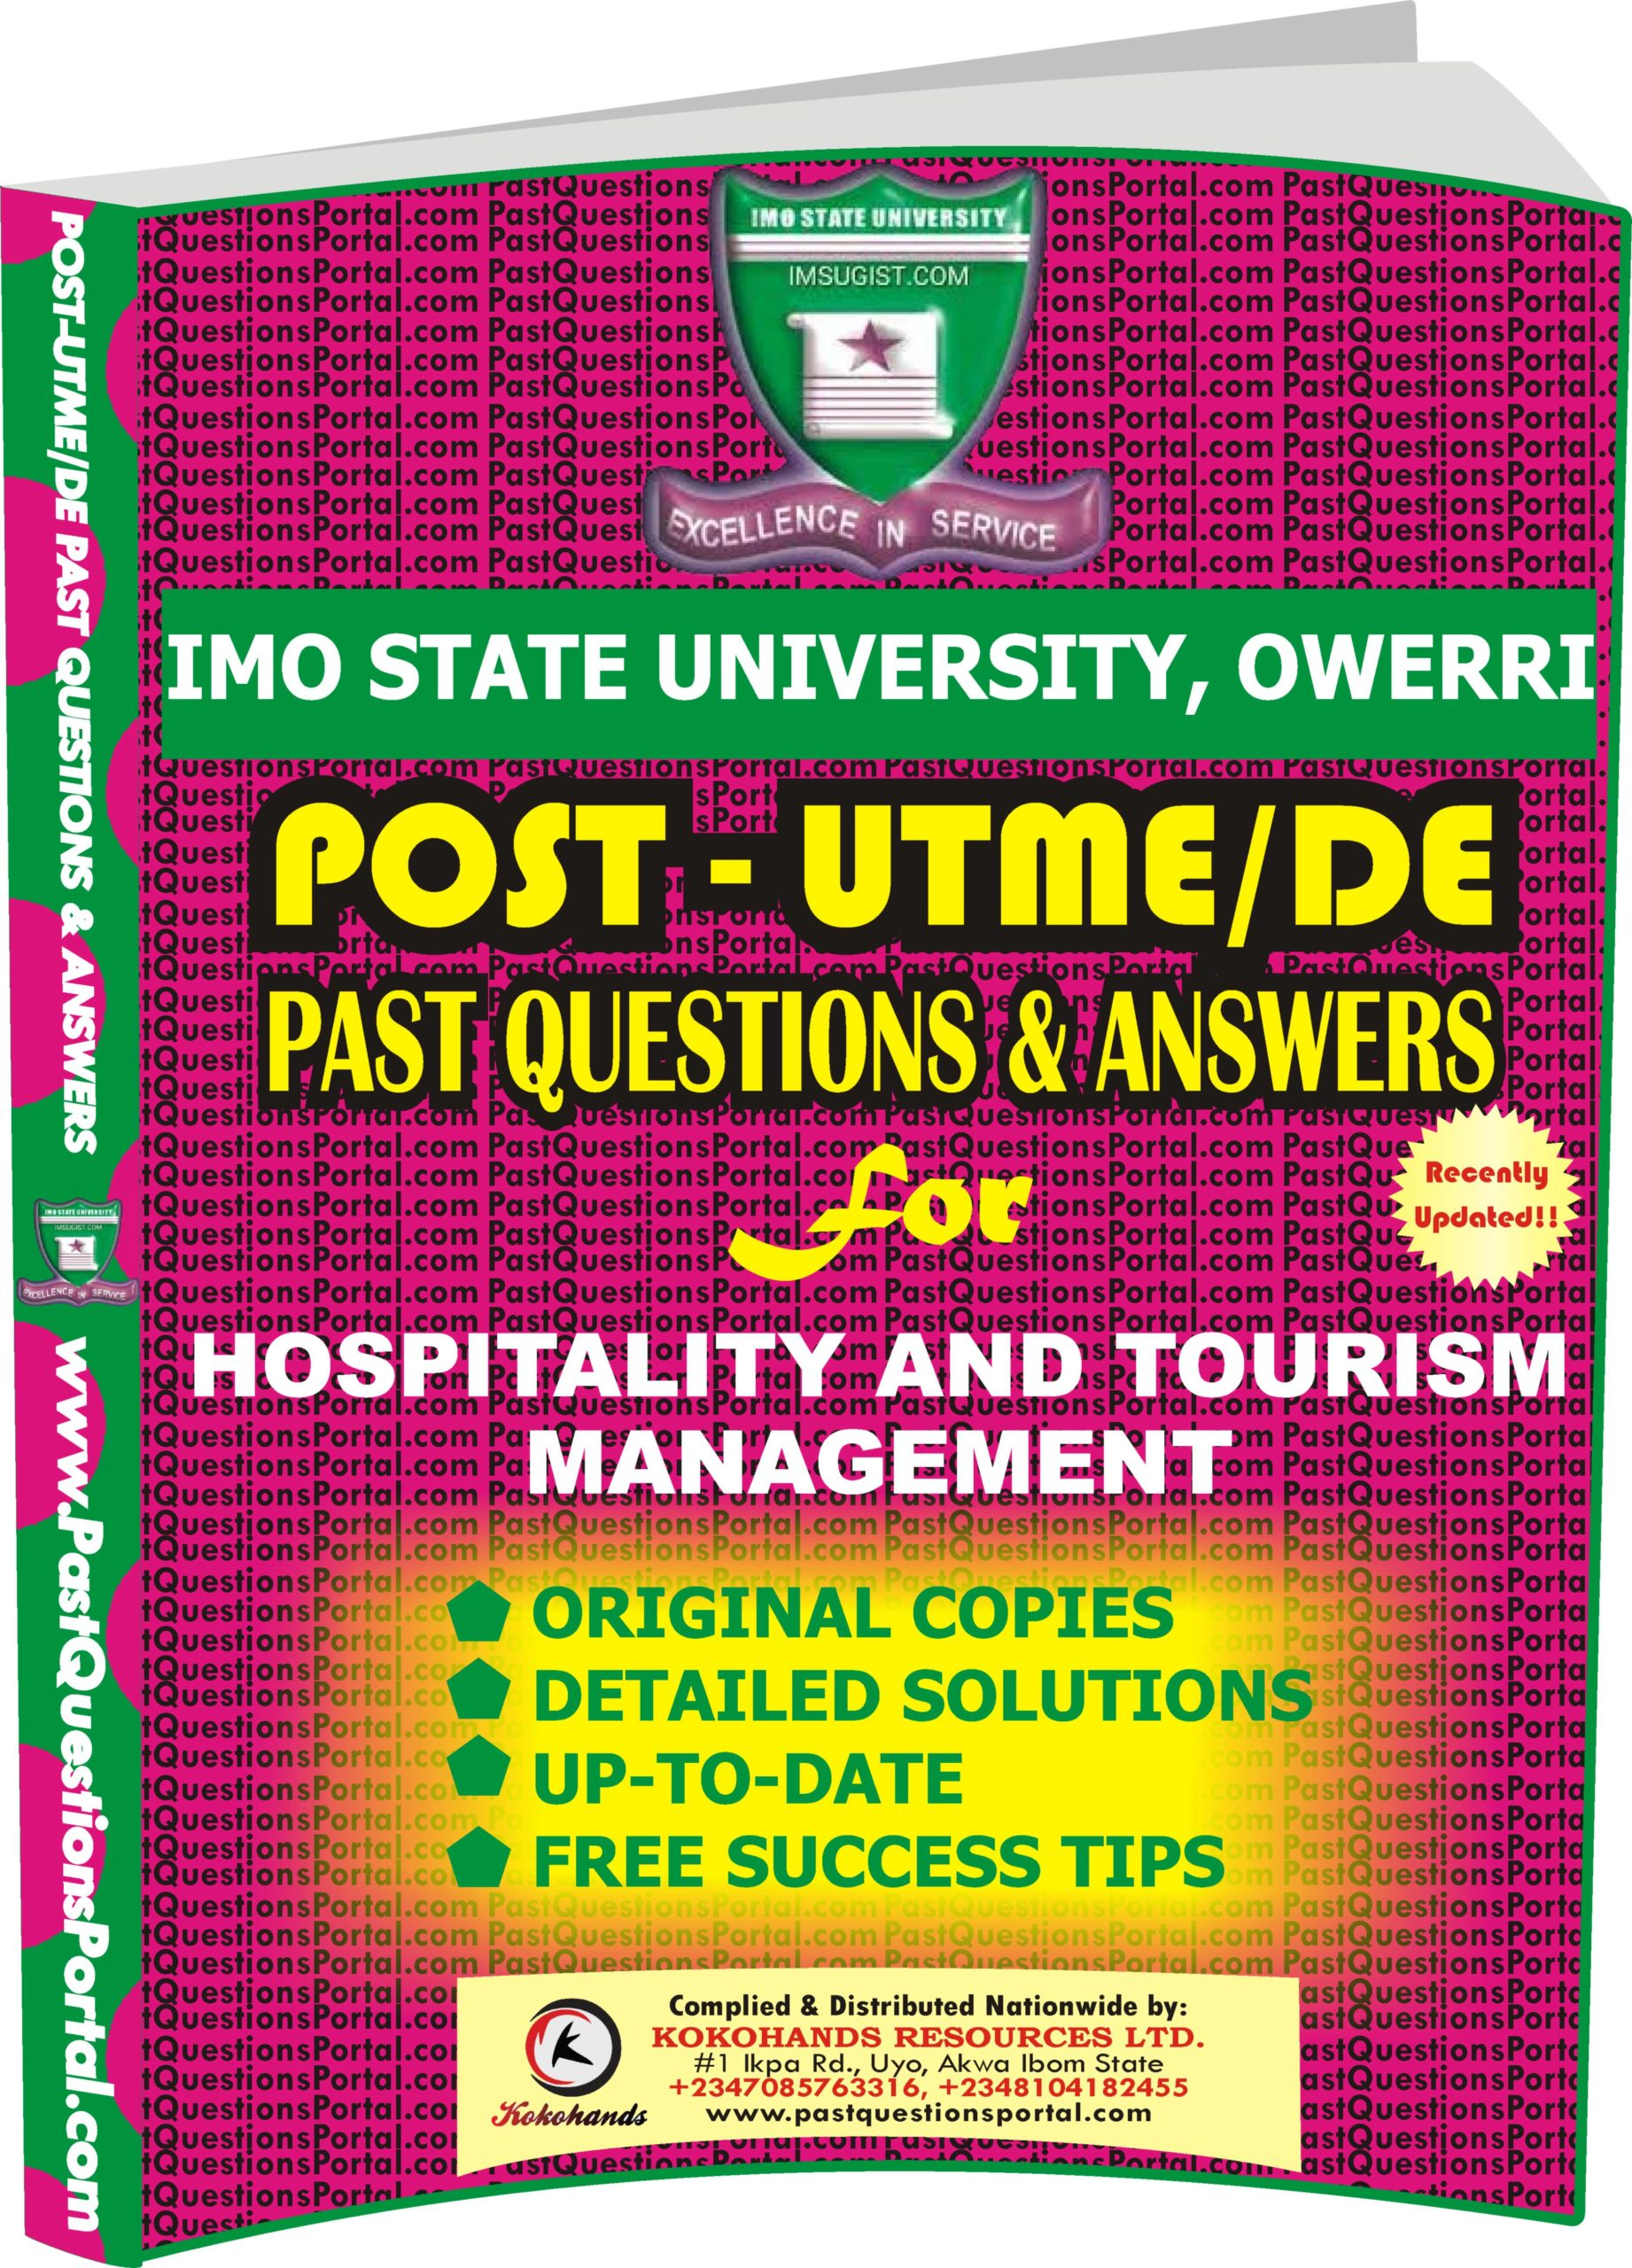 IMSU Post UTME Past Questions for Hospitality and Tourism Management